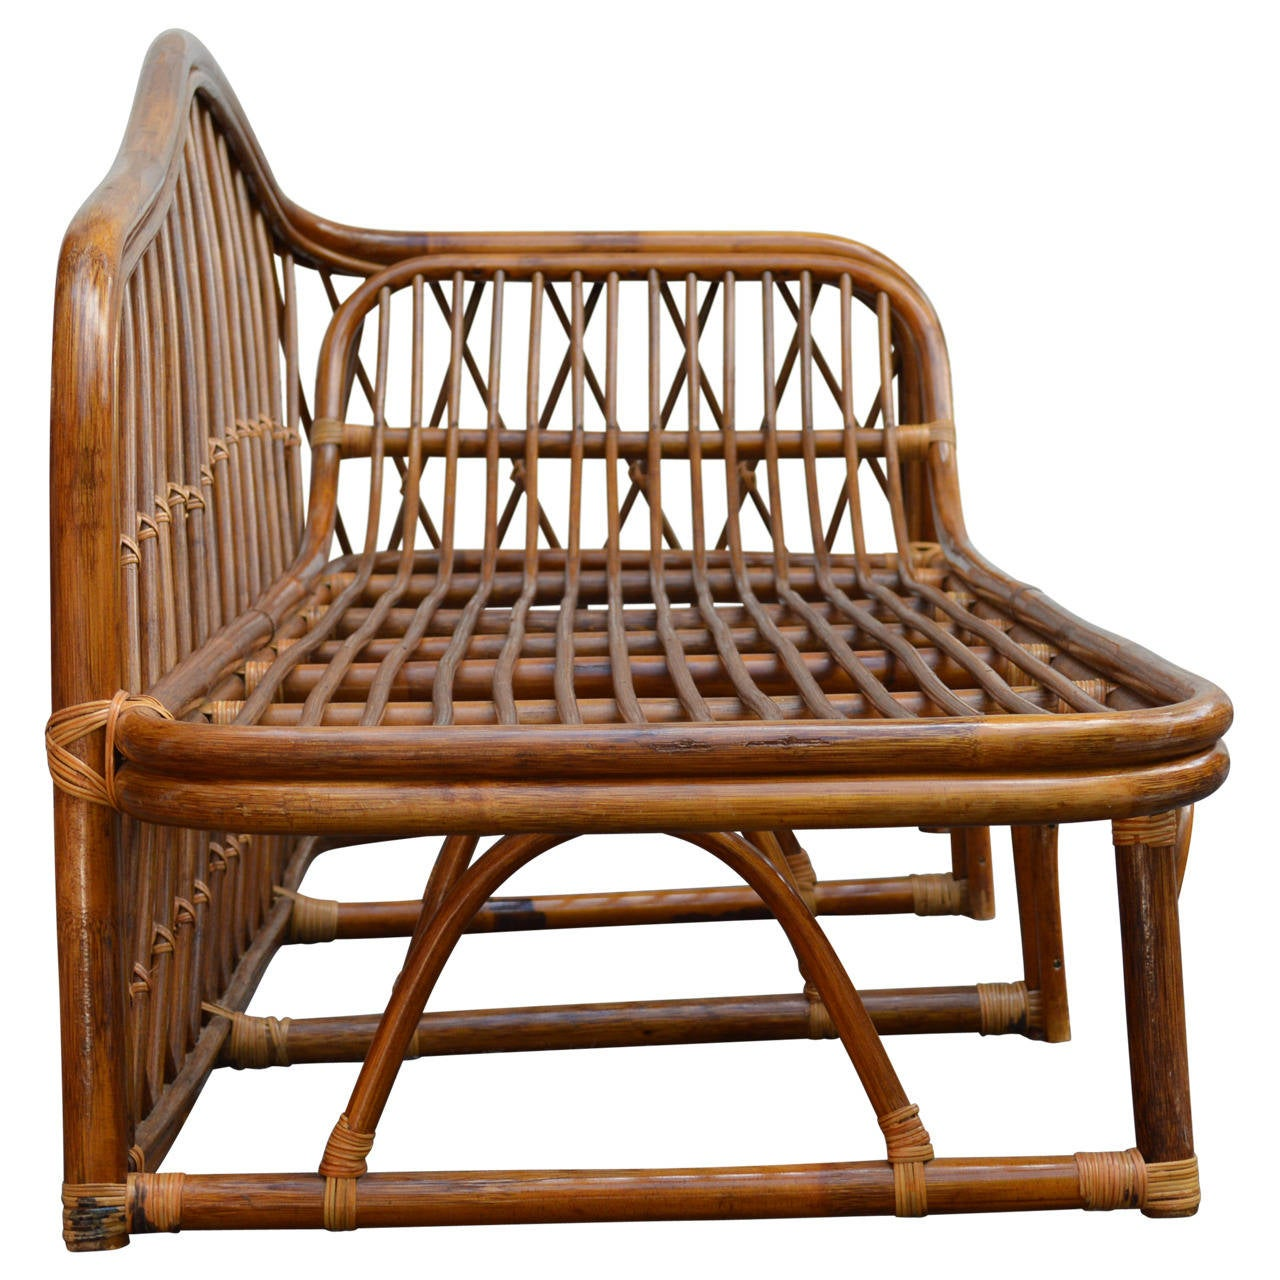 Vintage rattan chaise lounge at 1stdibs for Antique chaise lounge